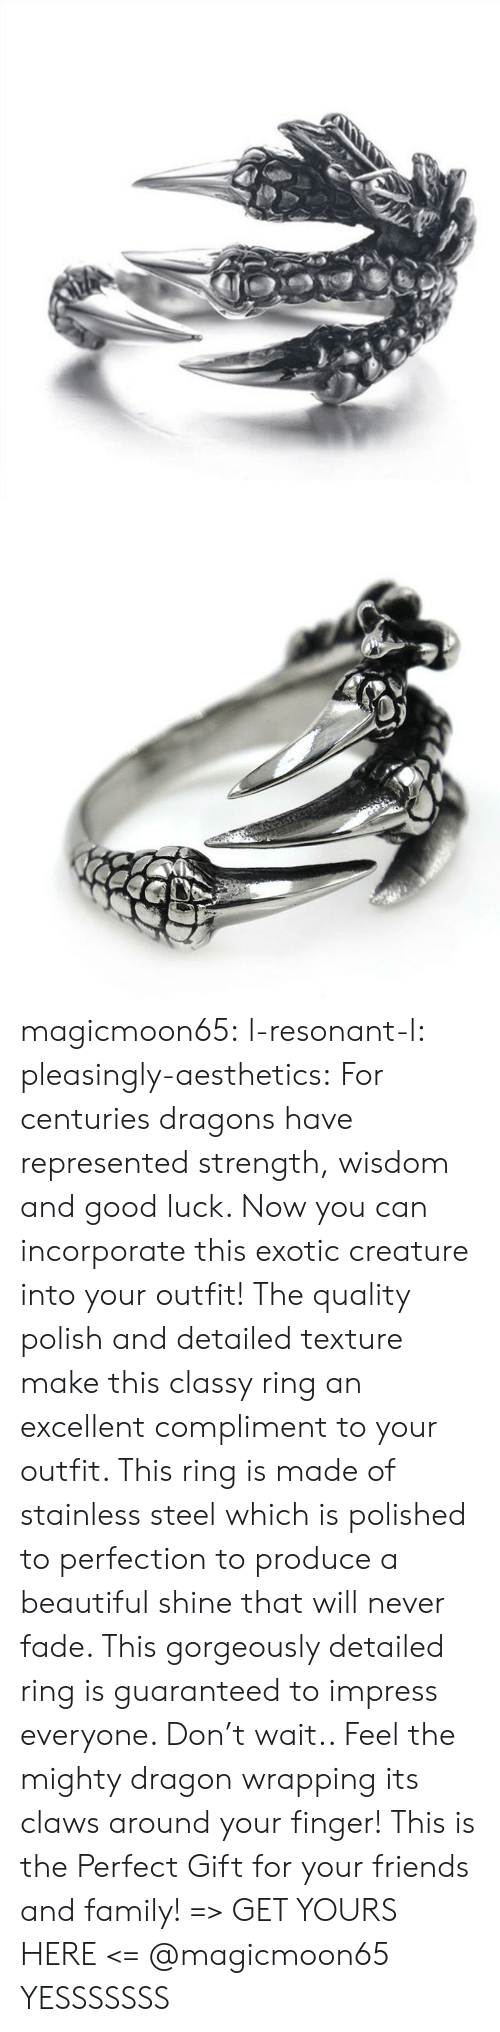 Centuries: magicmoon65:  l-resonant-l:  pleasingly-aesthetics: For centuries dragons have represented strength, wisdom and good luck. Now you can incorporate this exotic creature into your outfit! The quality polish and detailed texture make this classy ring an excellent compliment to your outfit. This ring is made of stainless steel which is polished to perfection to produce a beautiful shine that will never fade.  This gorgeously detailed ring is guaranteed to impress everyone. Don't wait.. Feel the mighty dragon wrapping its claws around your finger! This is the Perfect Gift for your friends and family! => GET YOURS HERE <=   @magicmoon65   YESSSSSSS